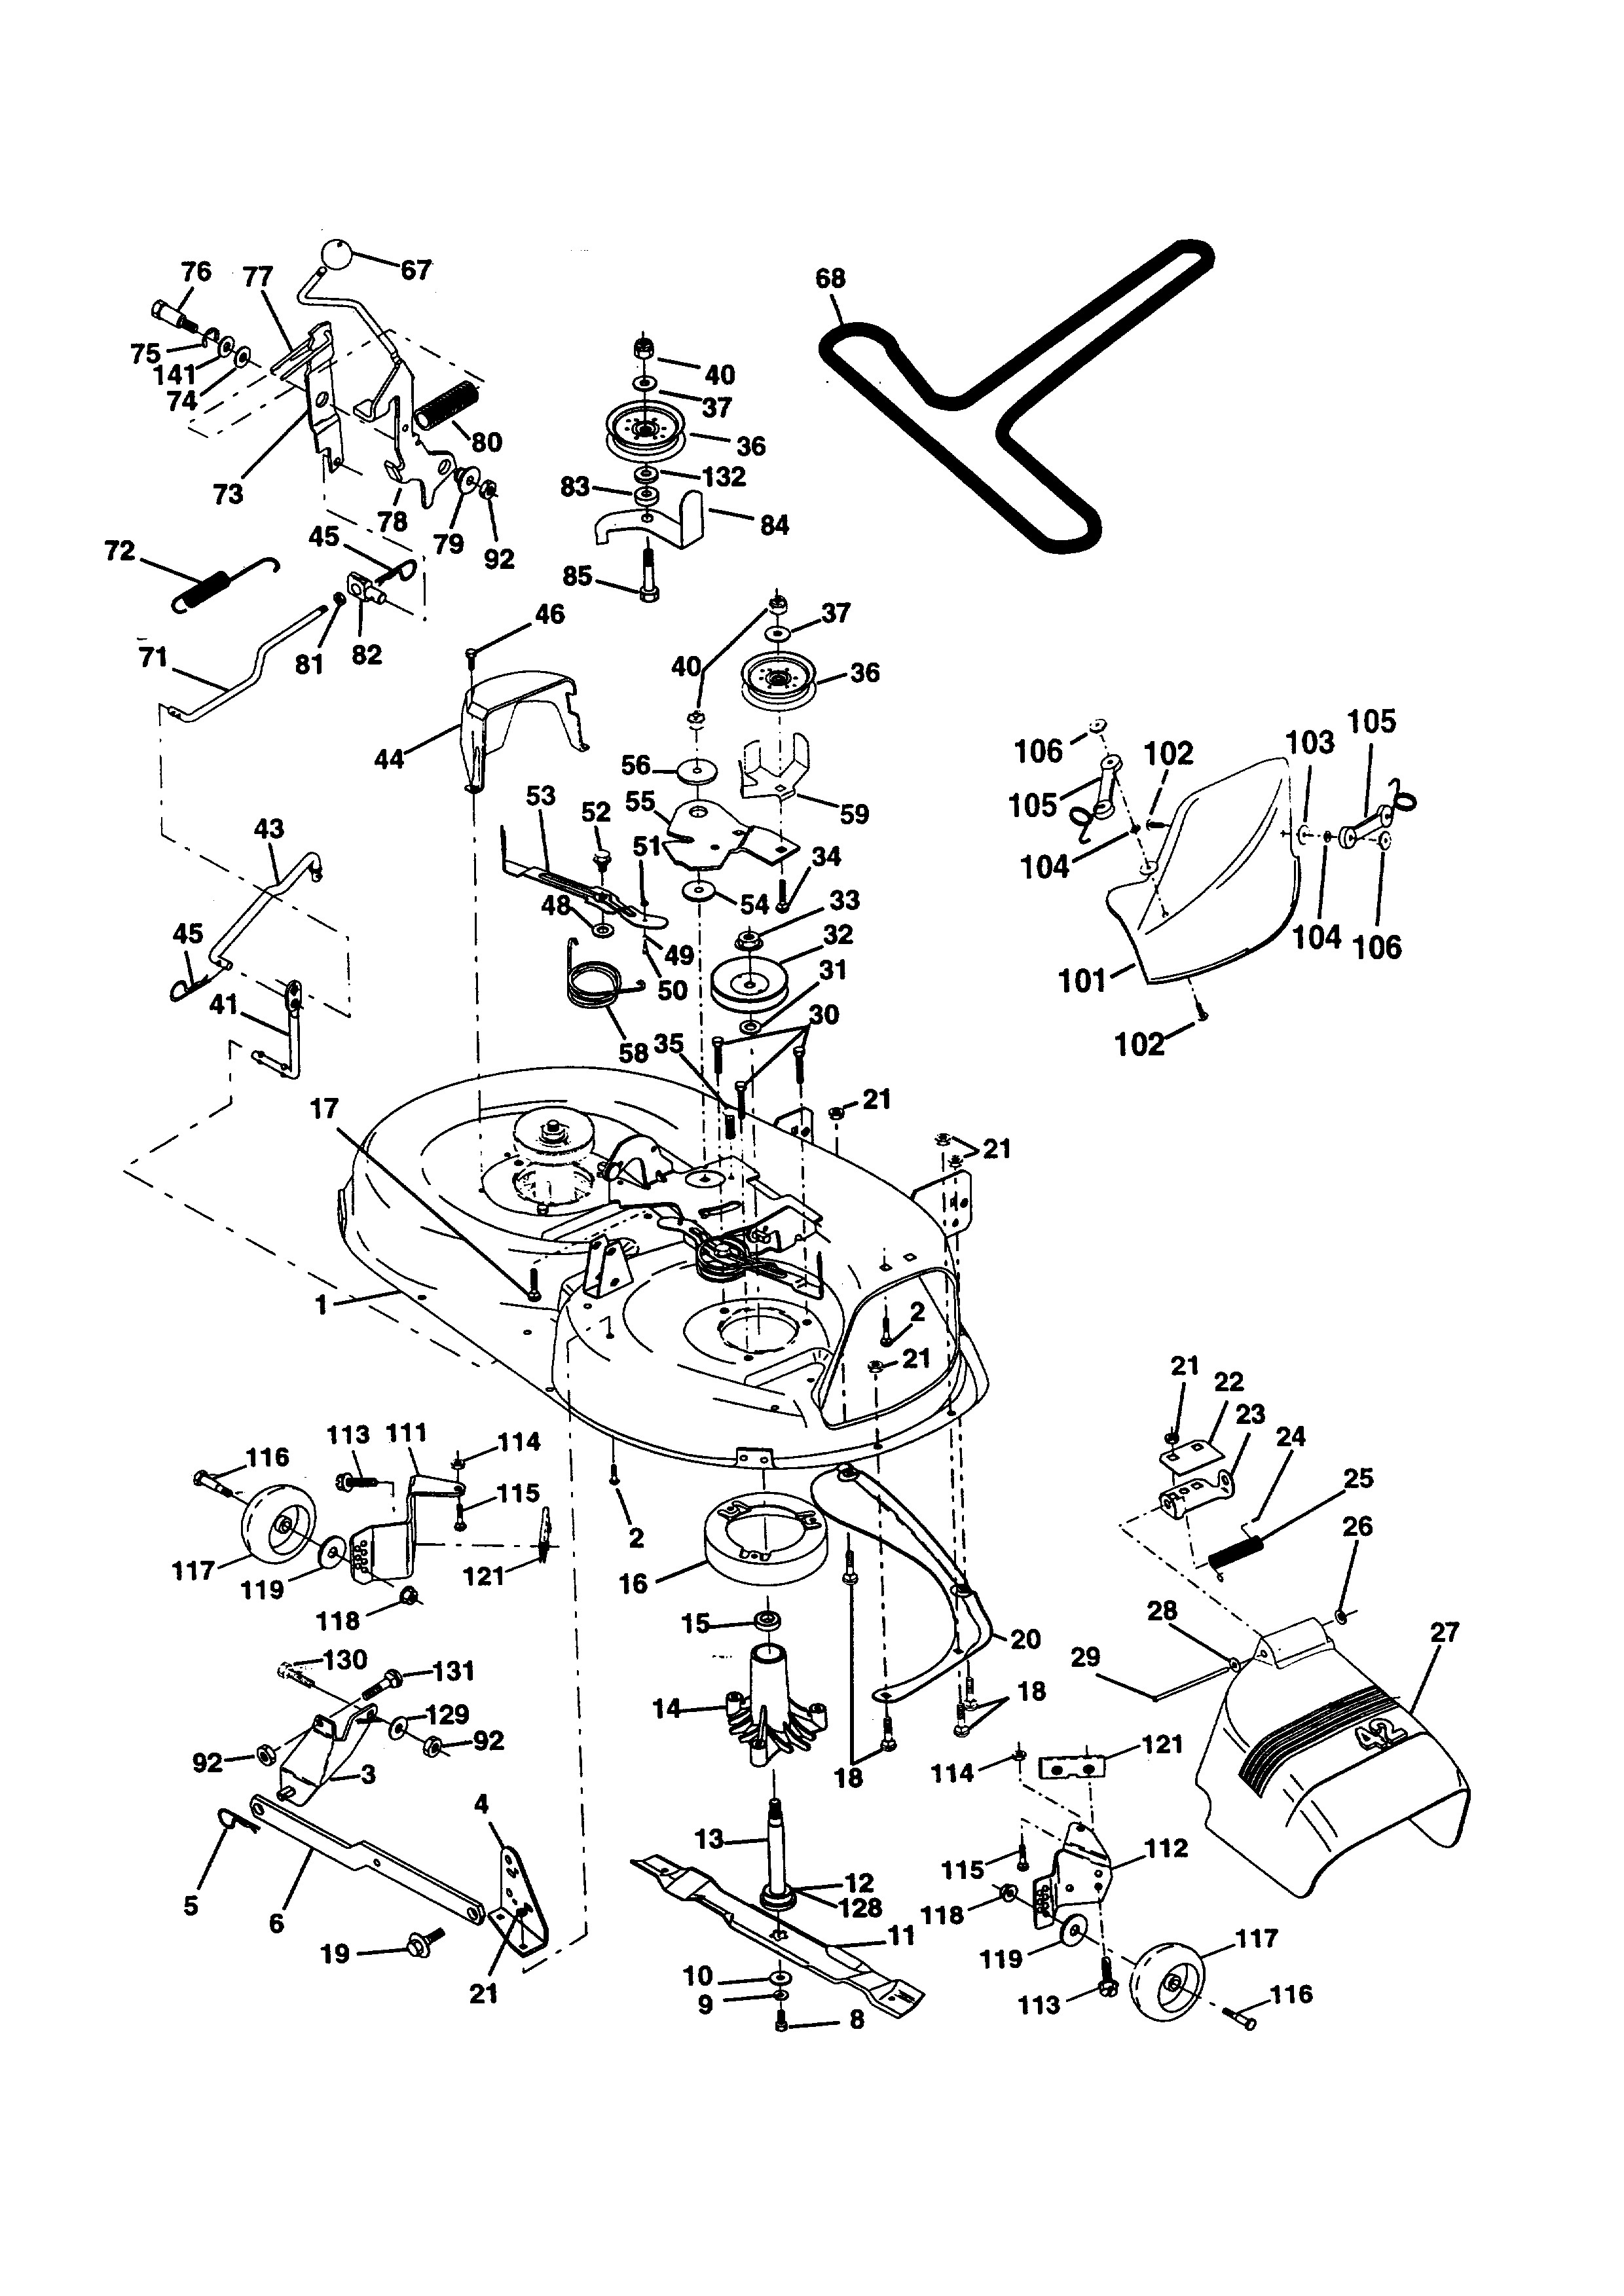 Parts Diagram For Briggs Stratton Engine Western Auto Model And Ayp9187b89 Lawn Tractor Genuine Of